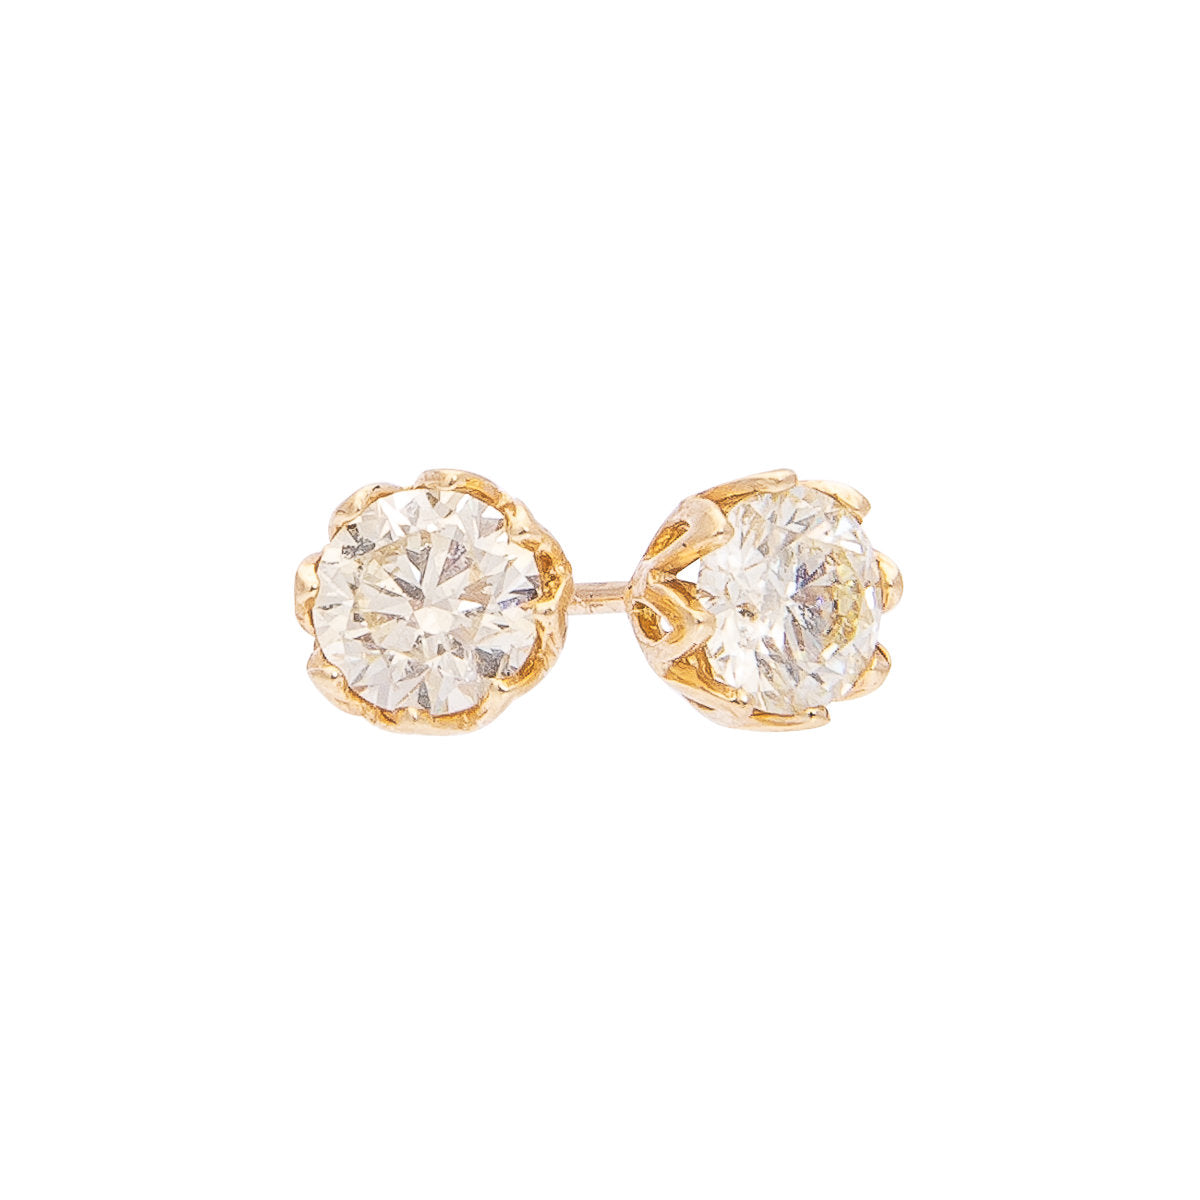 Sabel Collection 14K Yellow Gold Fancy Color Diamond Stud Earrings